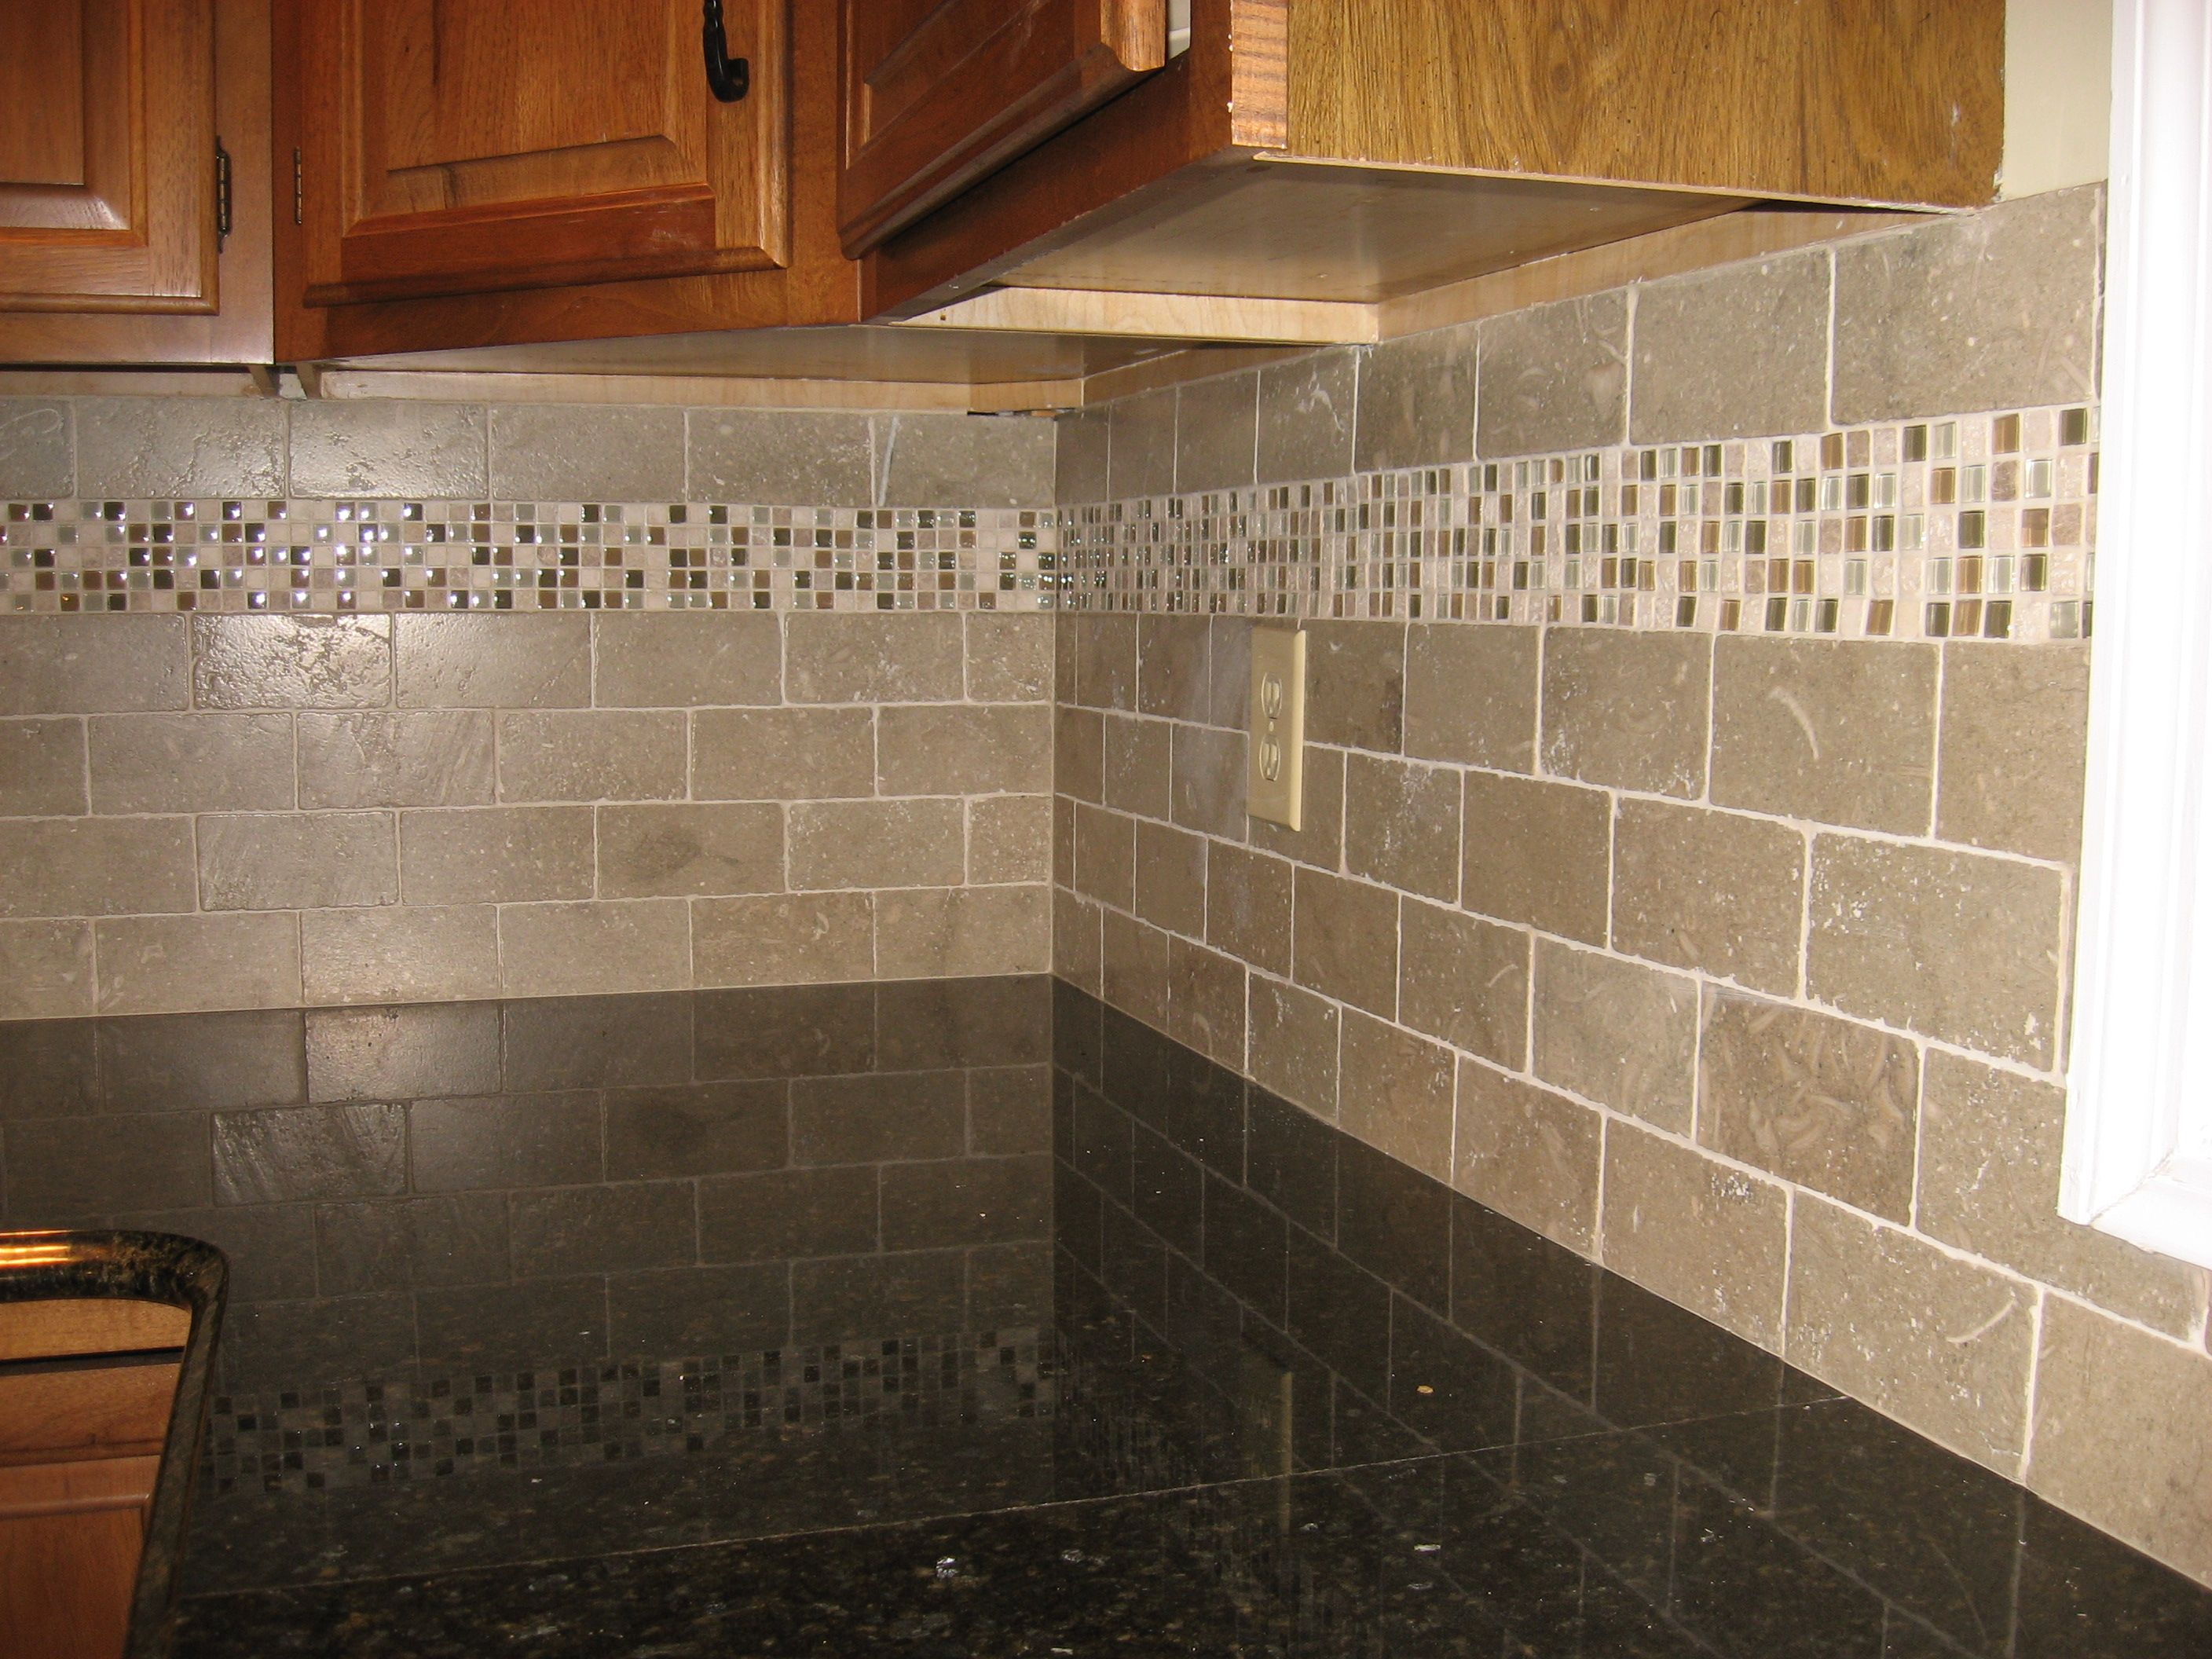 Uncategorized Tile Kitchen Backsplash subway tiles with mosaic accents backsplash tumbled new kitchen limestone tile and mixed accent